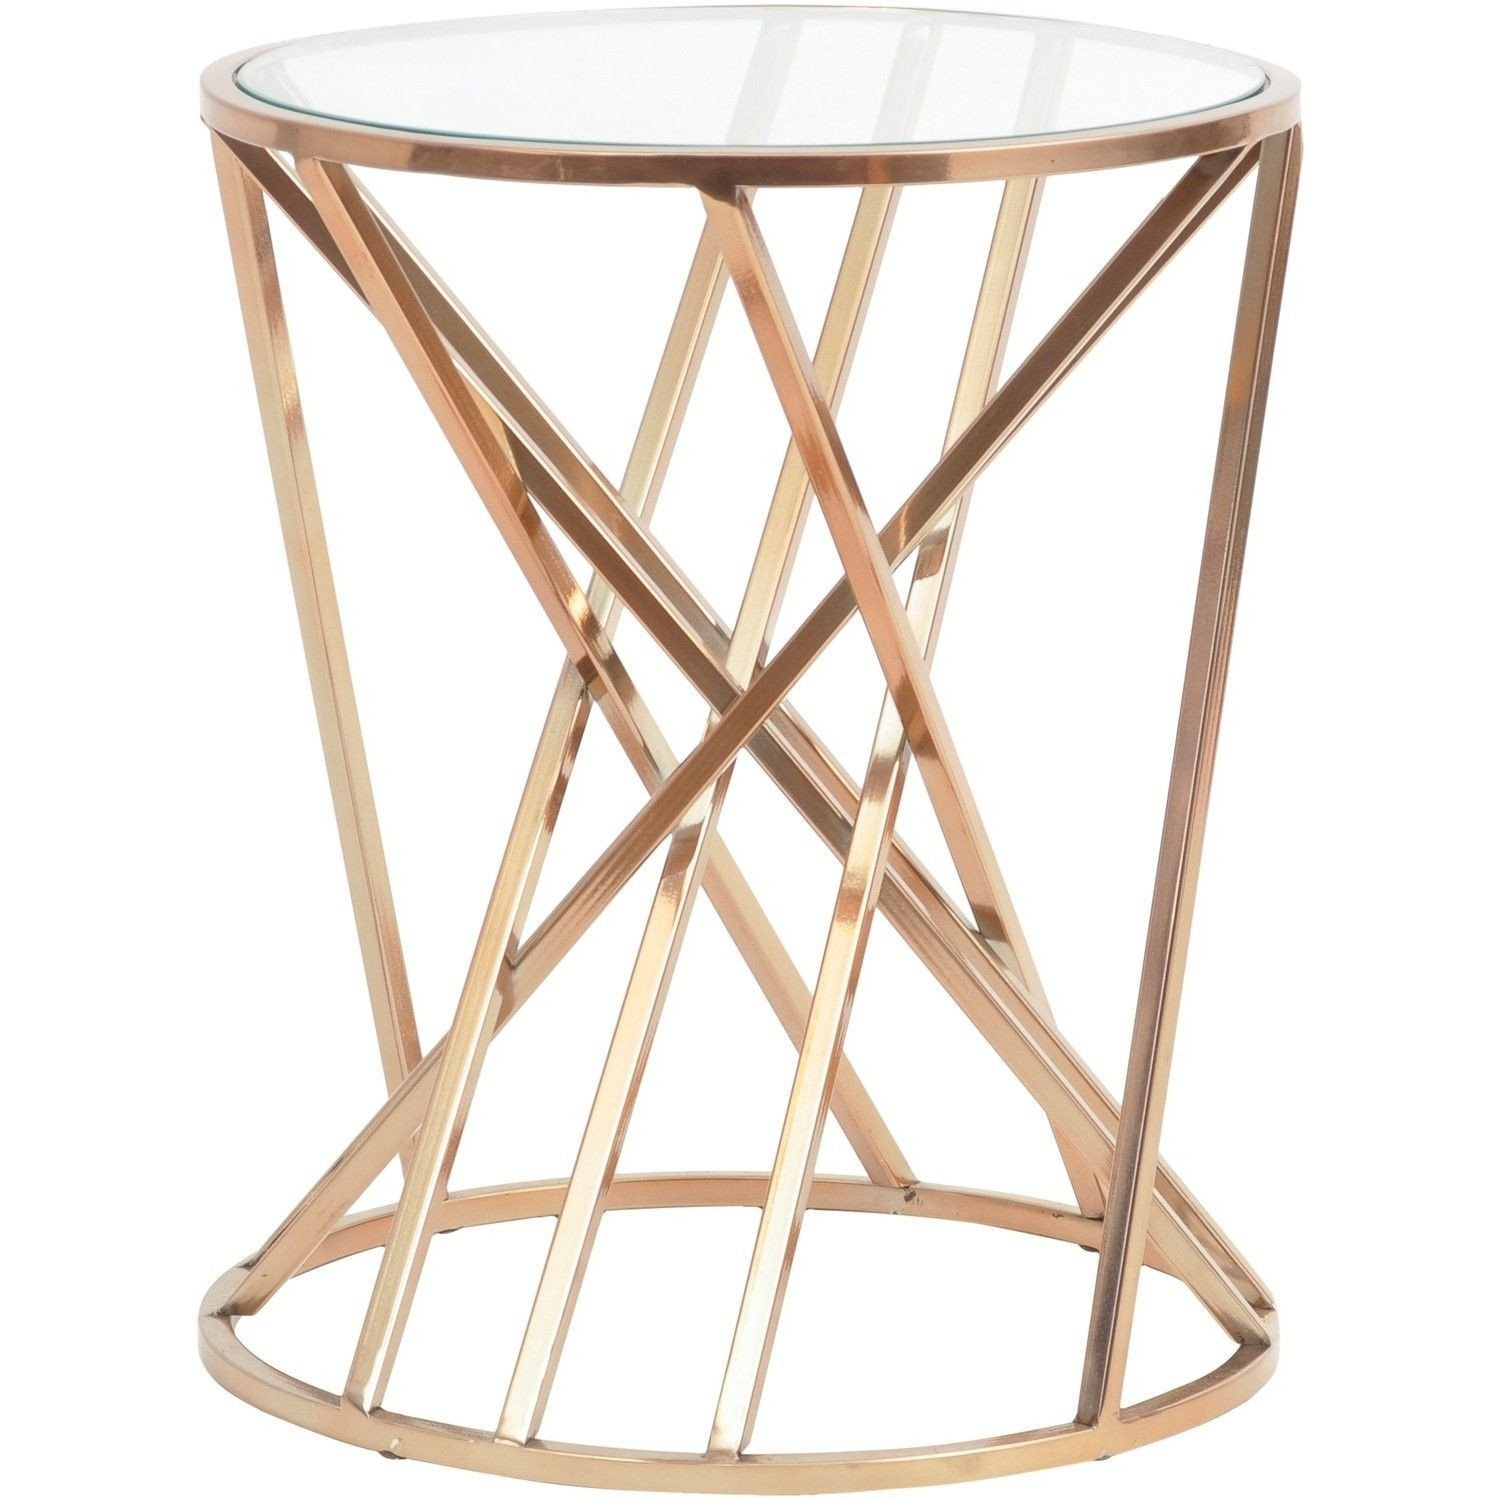 Glass Side Tables for Bedroom Fresh Gold Geometric Side Table In 2020